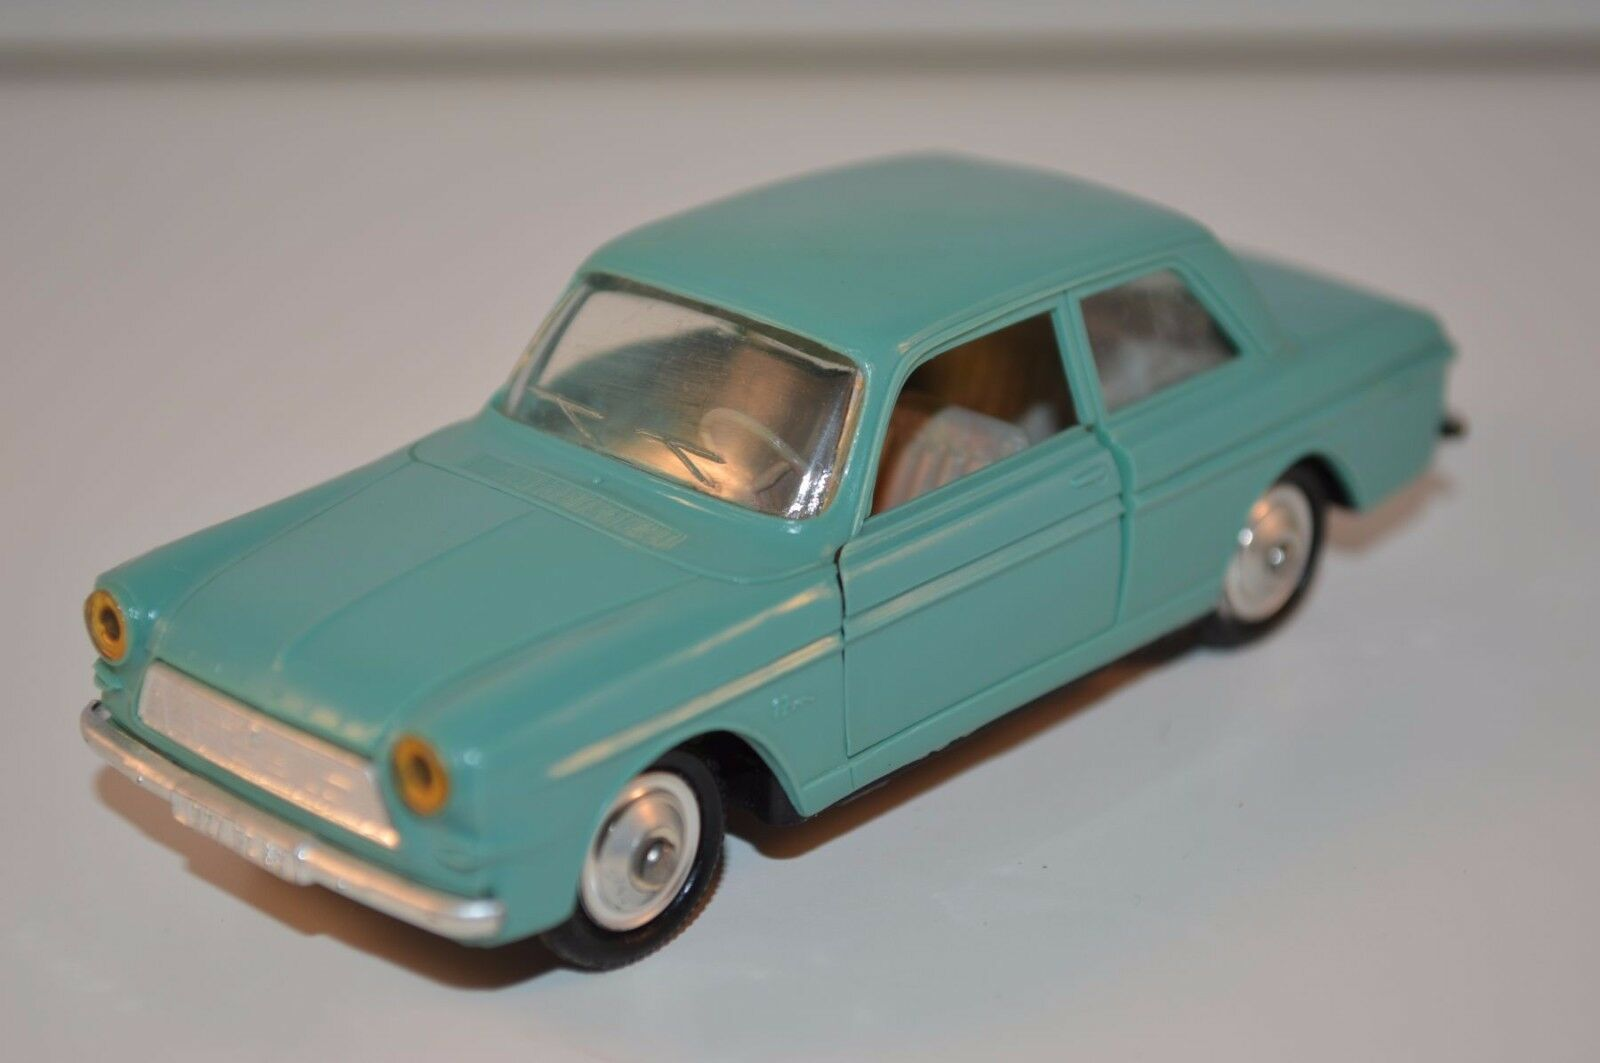 Norev 77 Ford Taunus 12 M in green plastique very very near mint